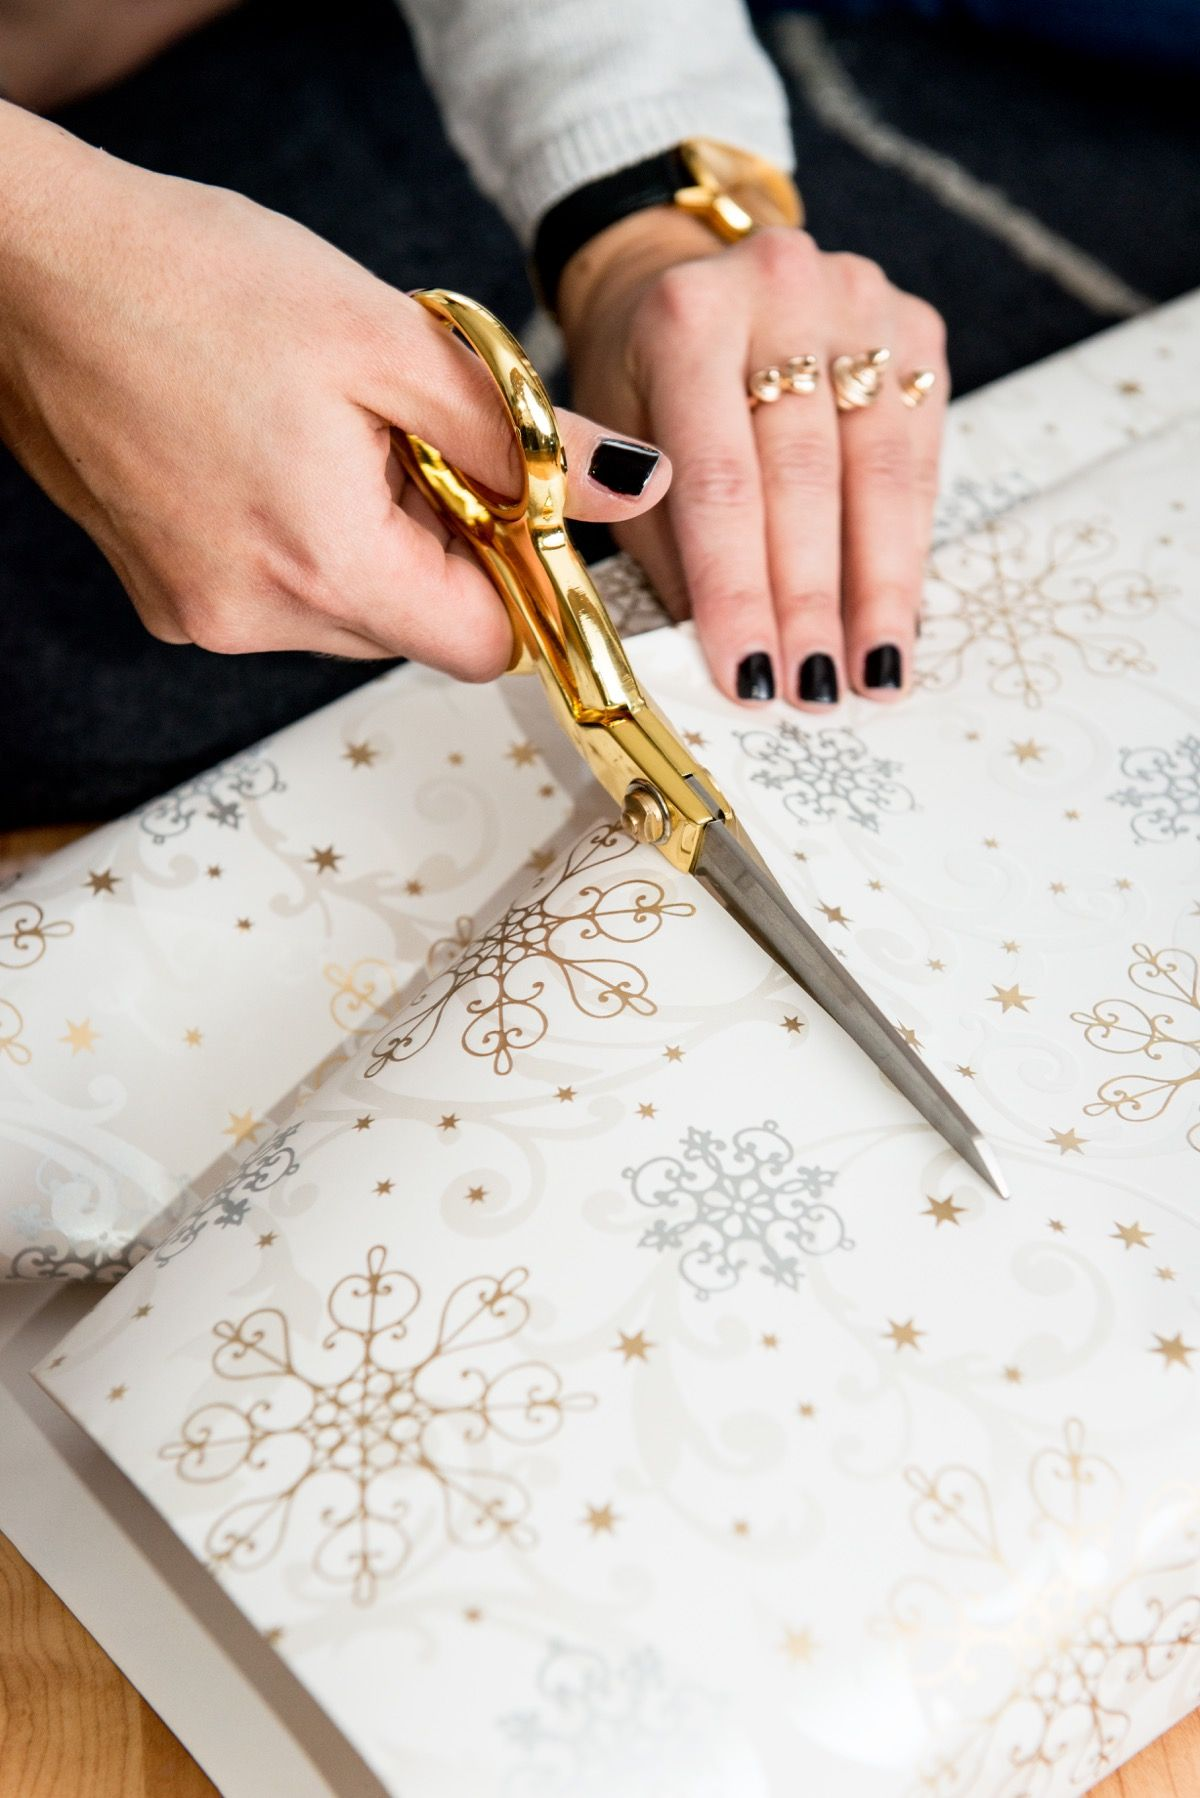 Best Affordable Christmas Gifts | Christmas gifts, Gift and Birthdays